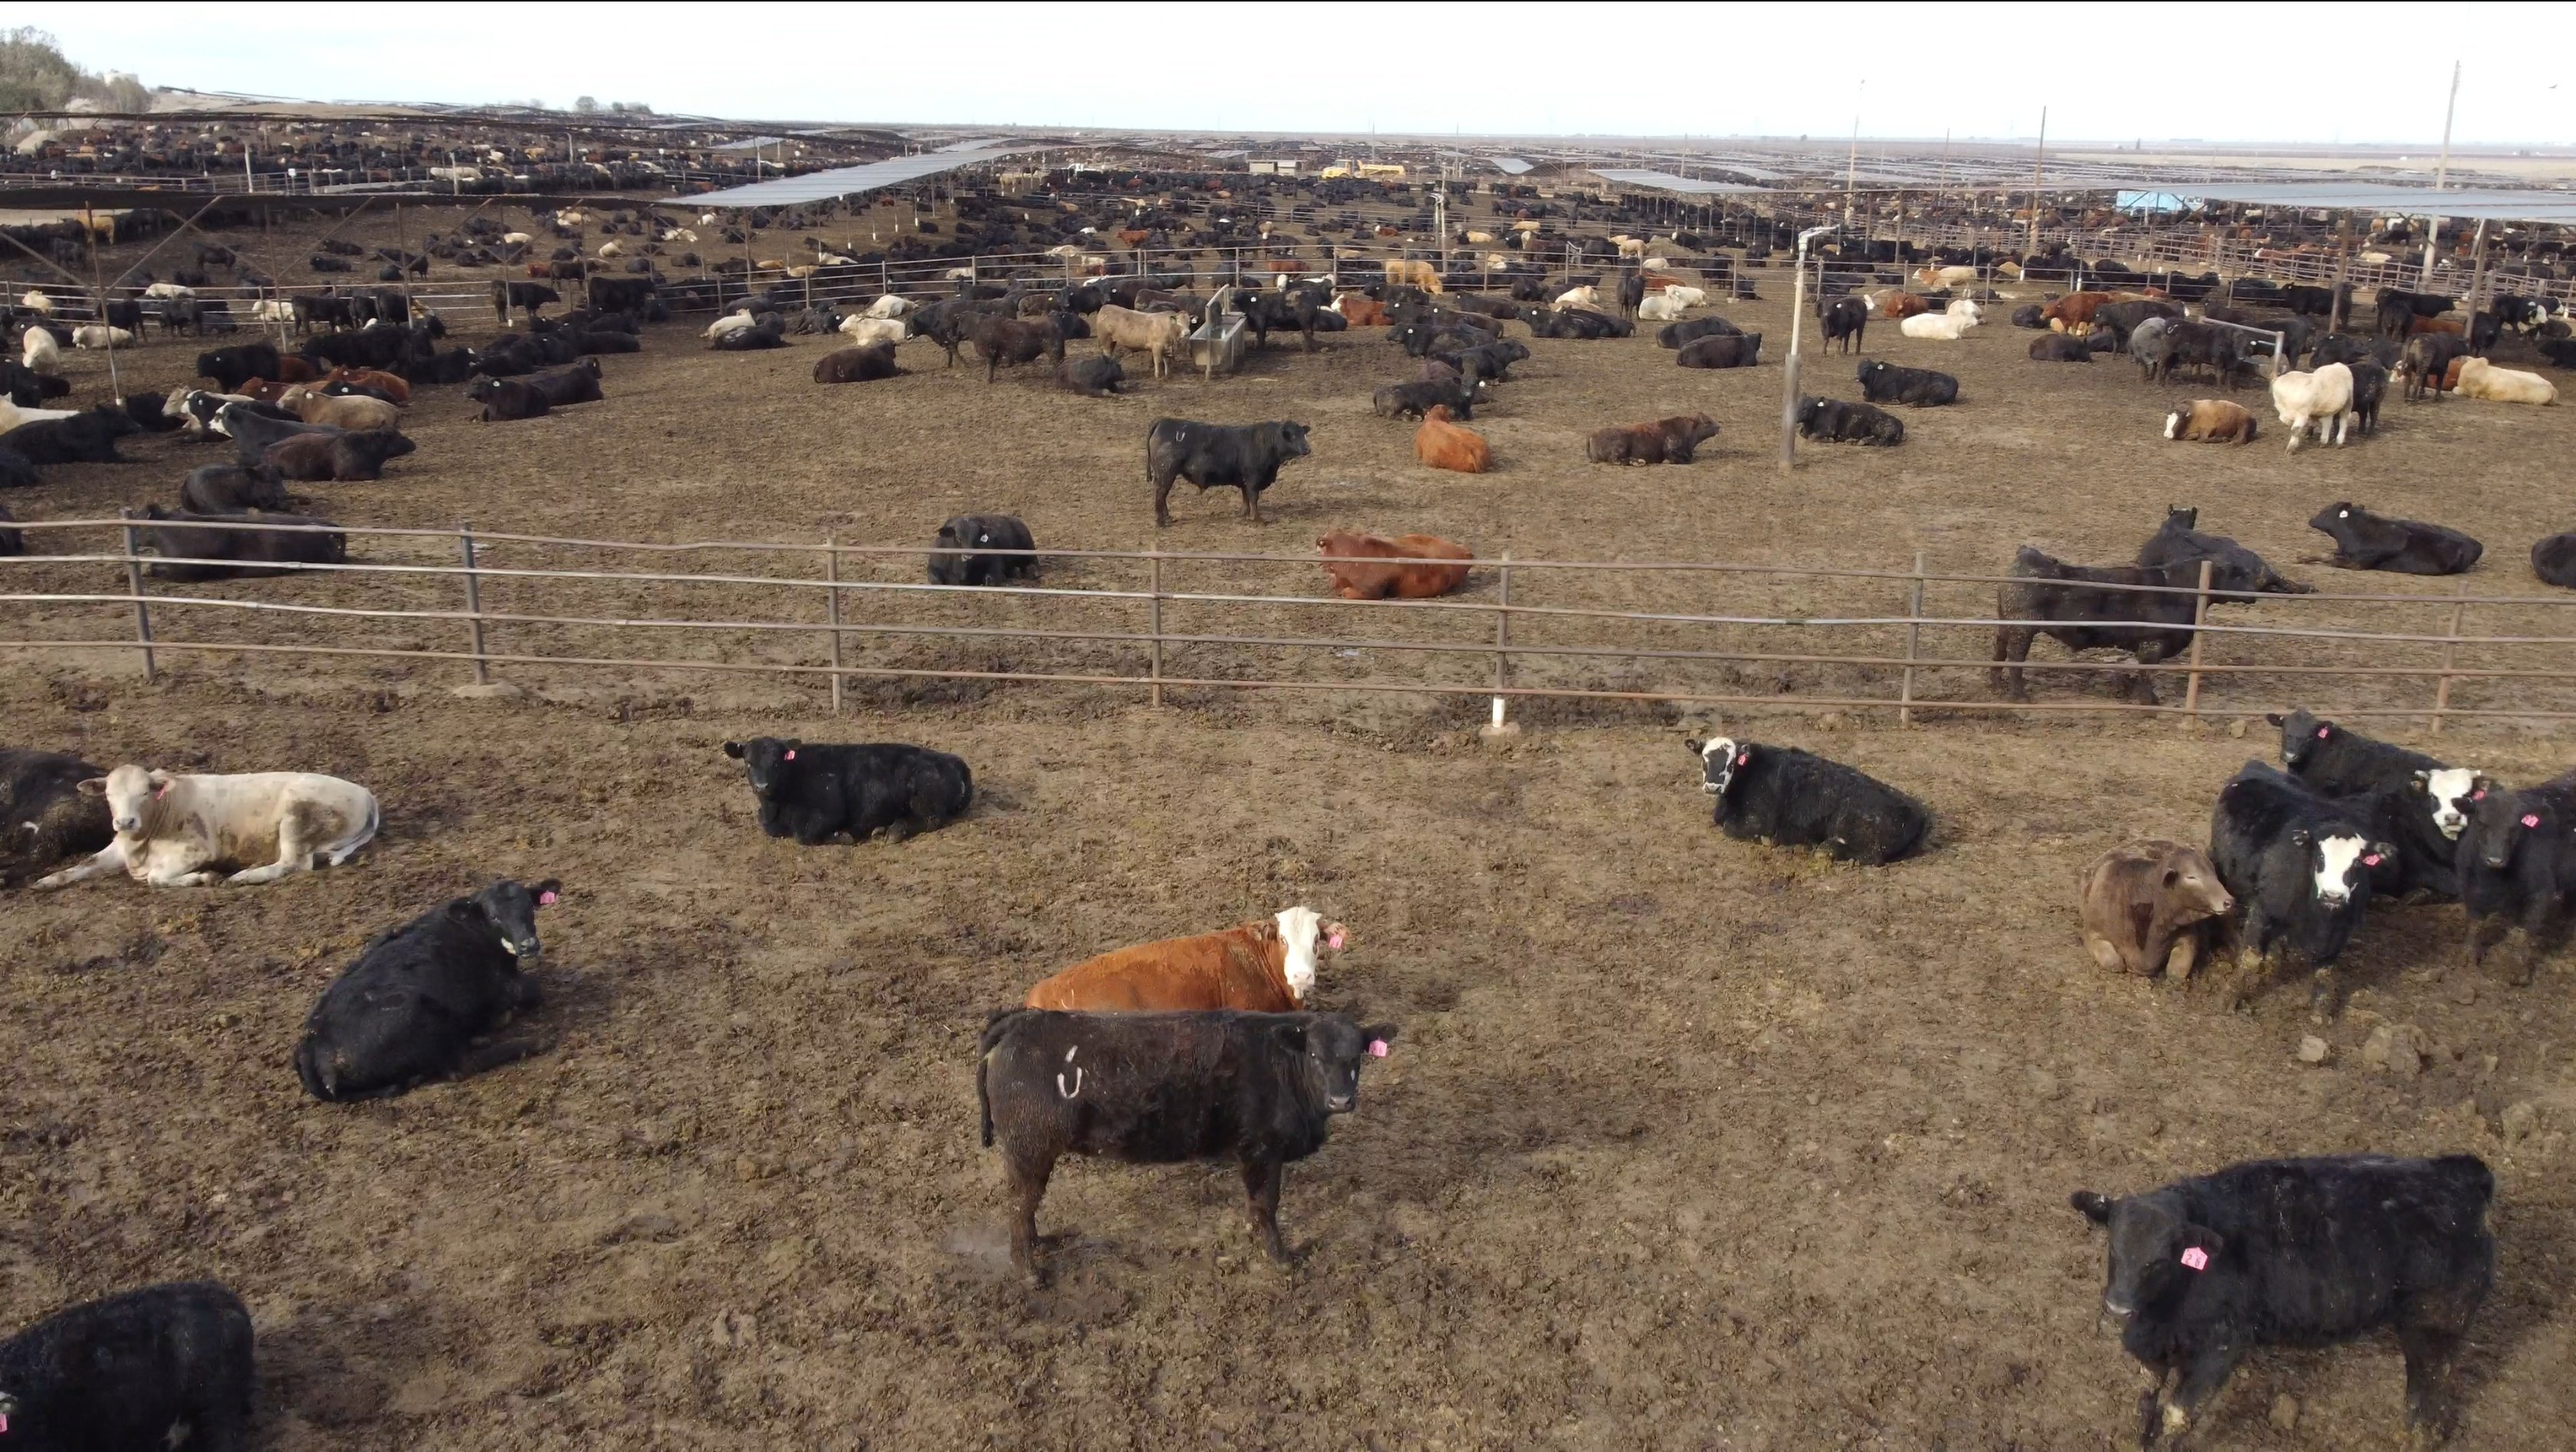 Why we urgently need a moratorium on animal agriculture expansion